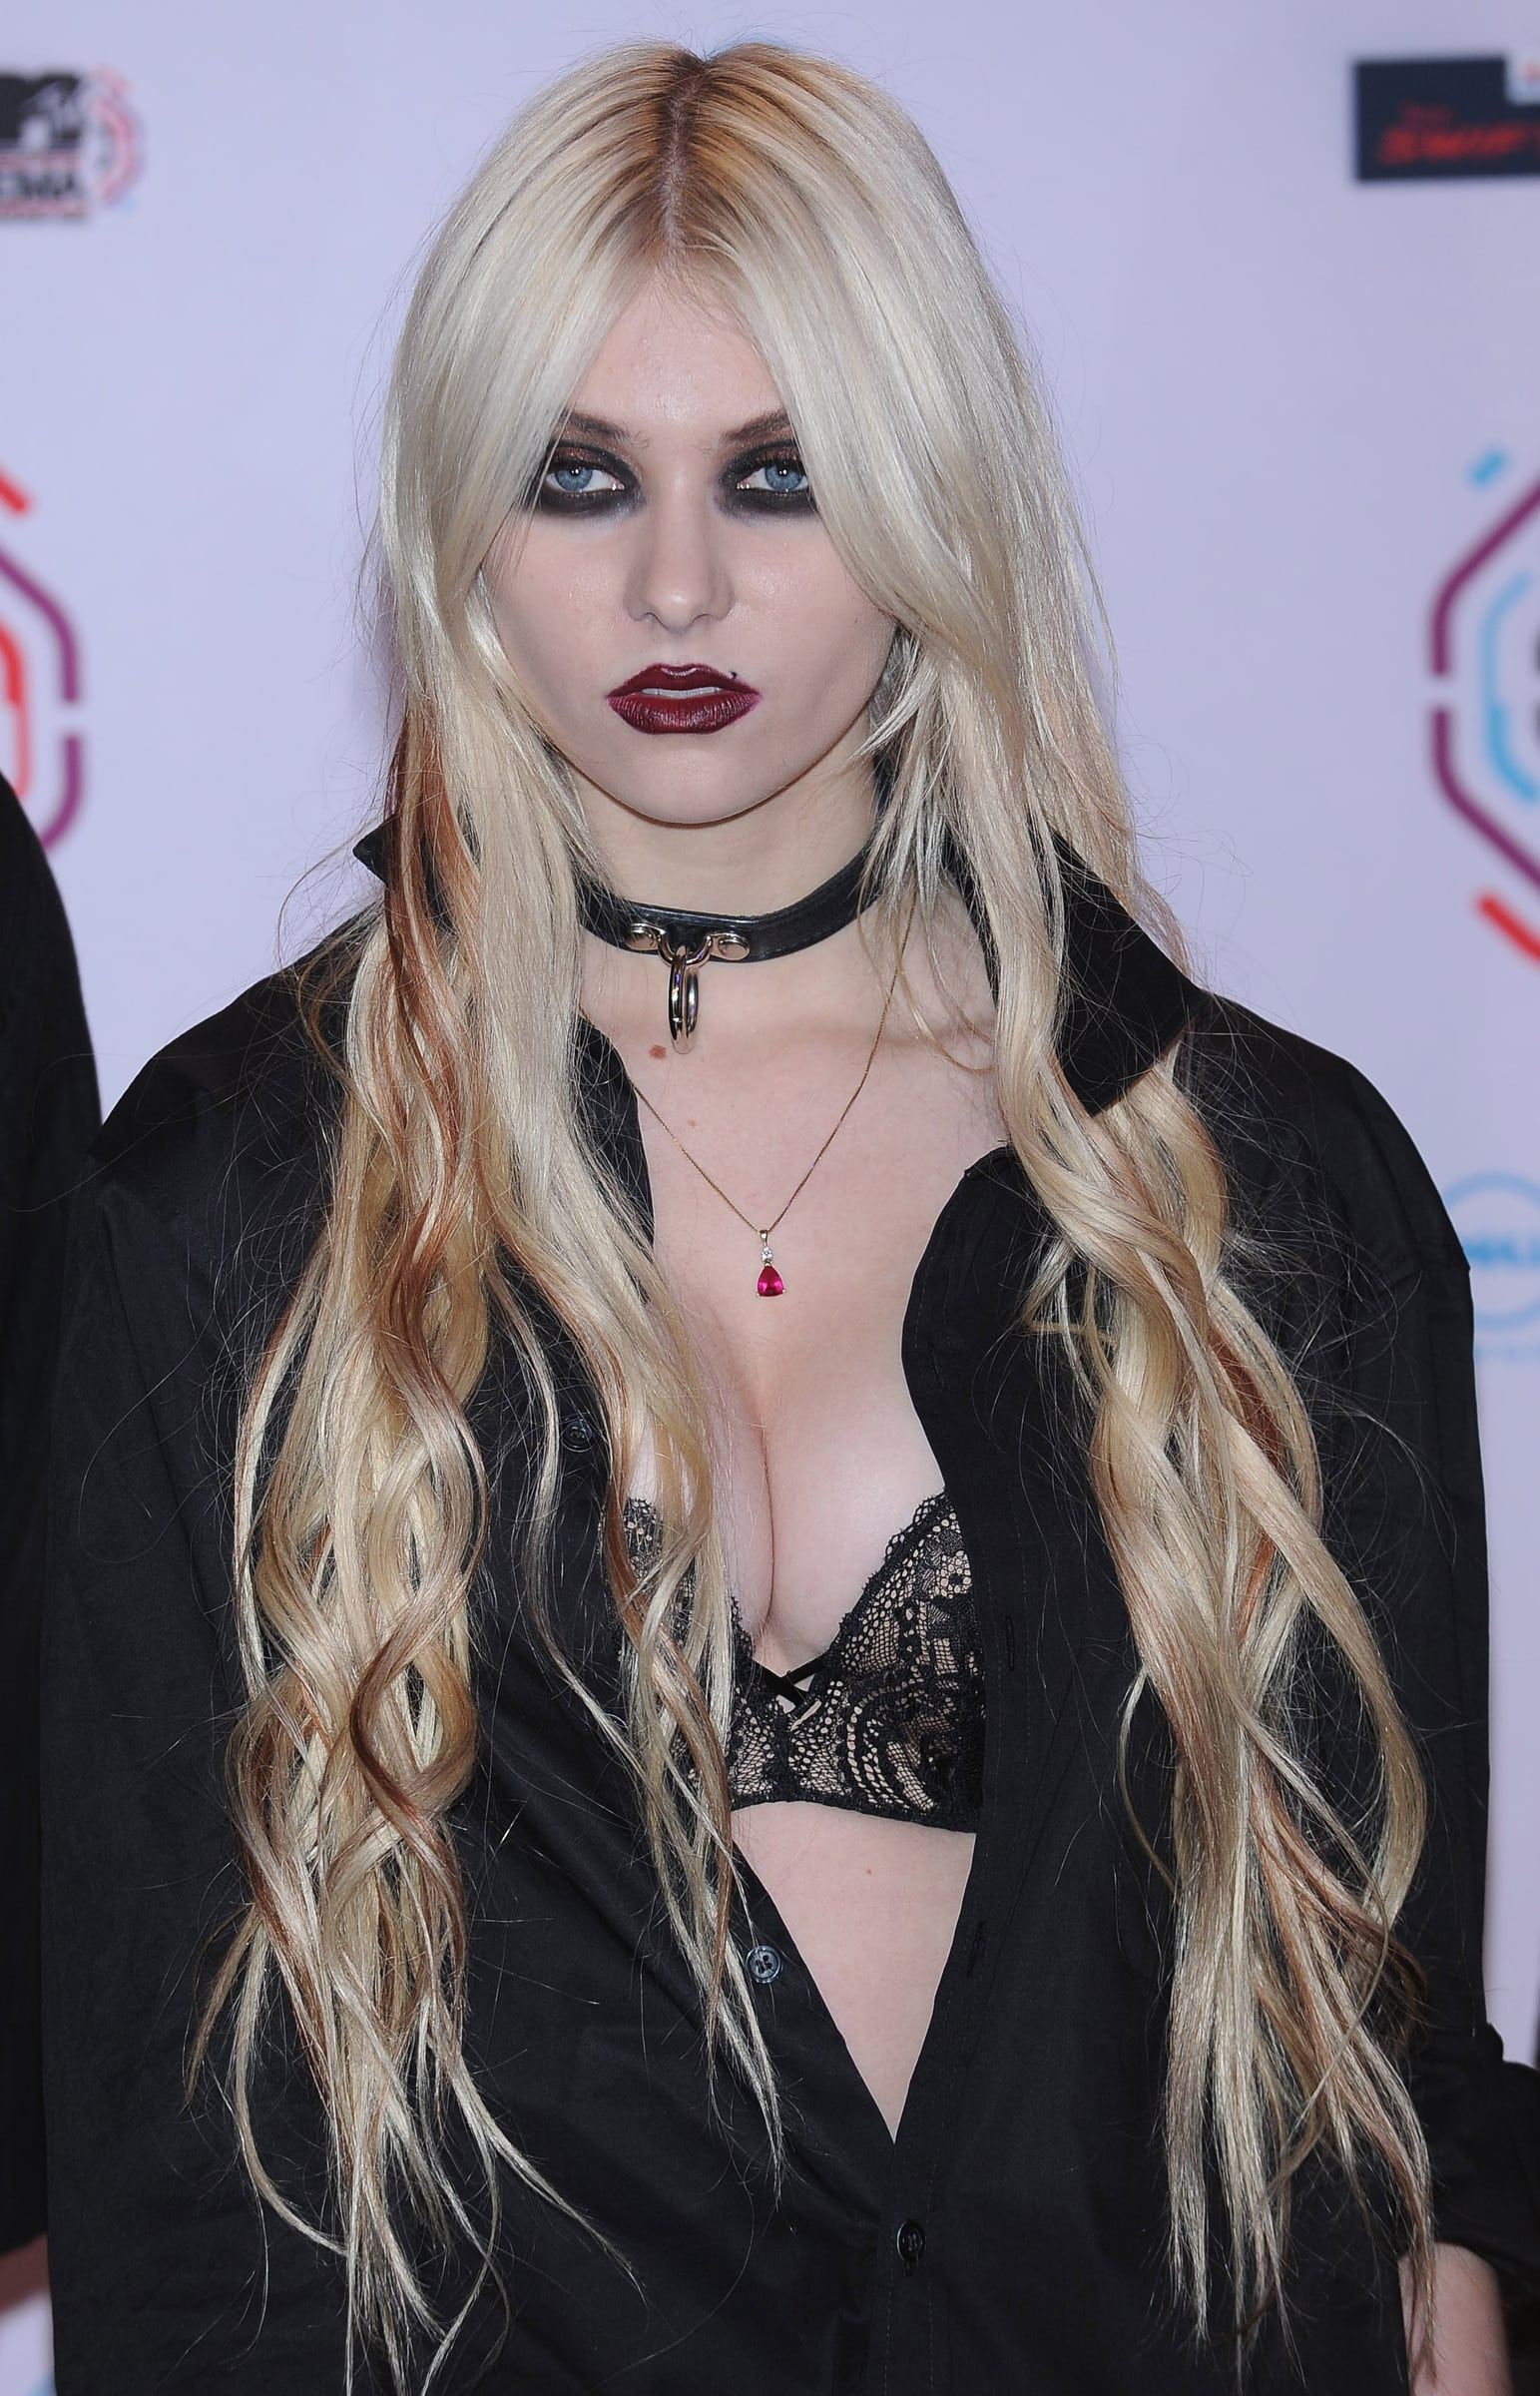 Paparazzi Taylor Momsen nude (66 foto and video), Pussy, Sideboobs, Twitter, braless 2017